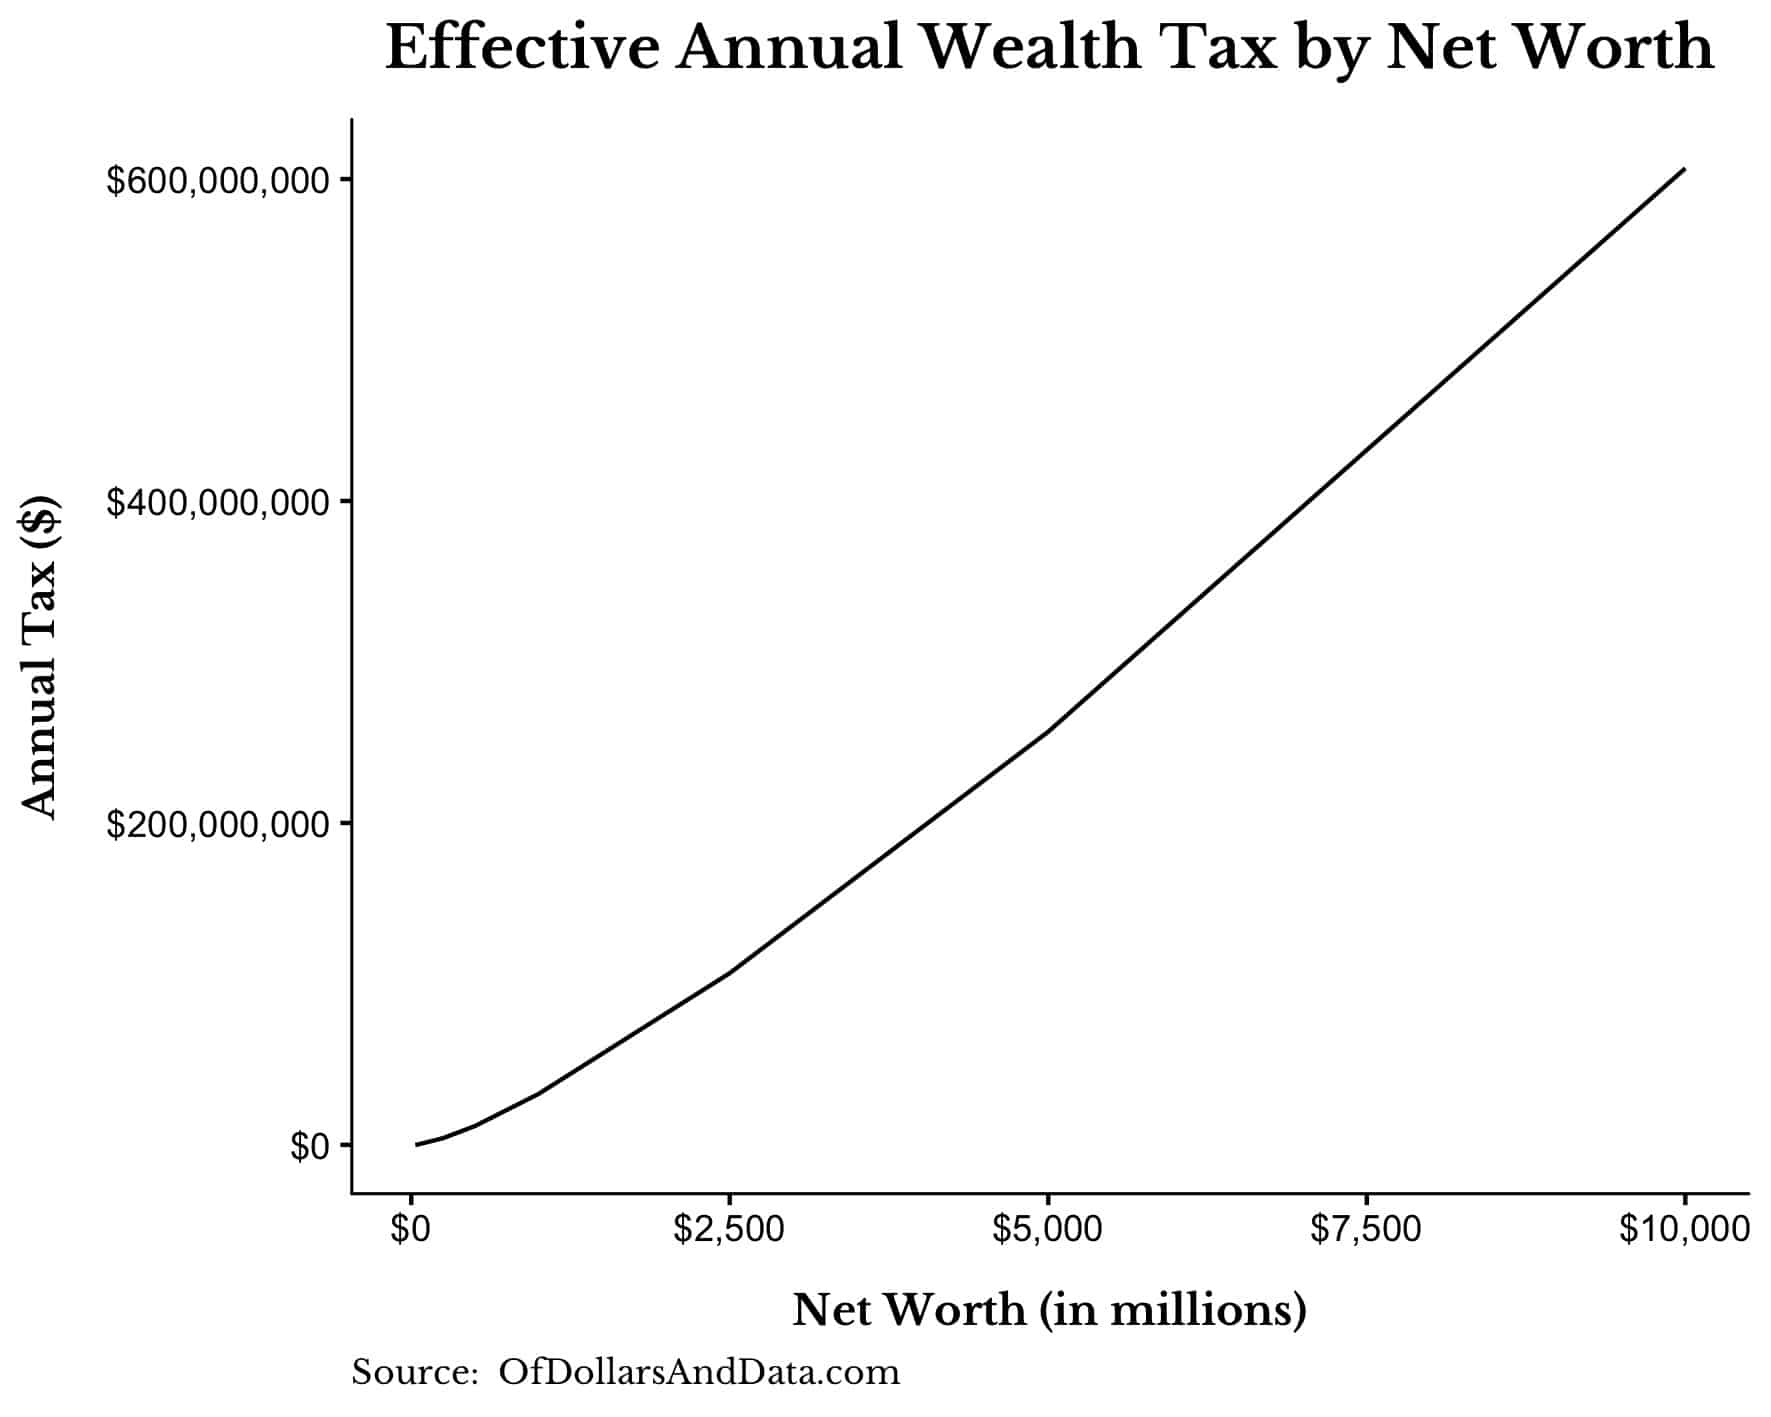 sanders effective annual wealth tax by net worth up to 10 billion